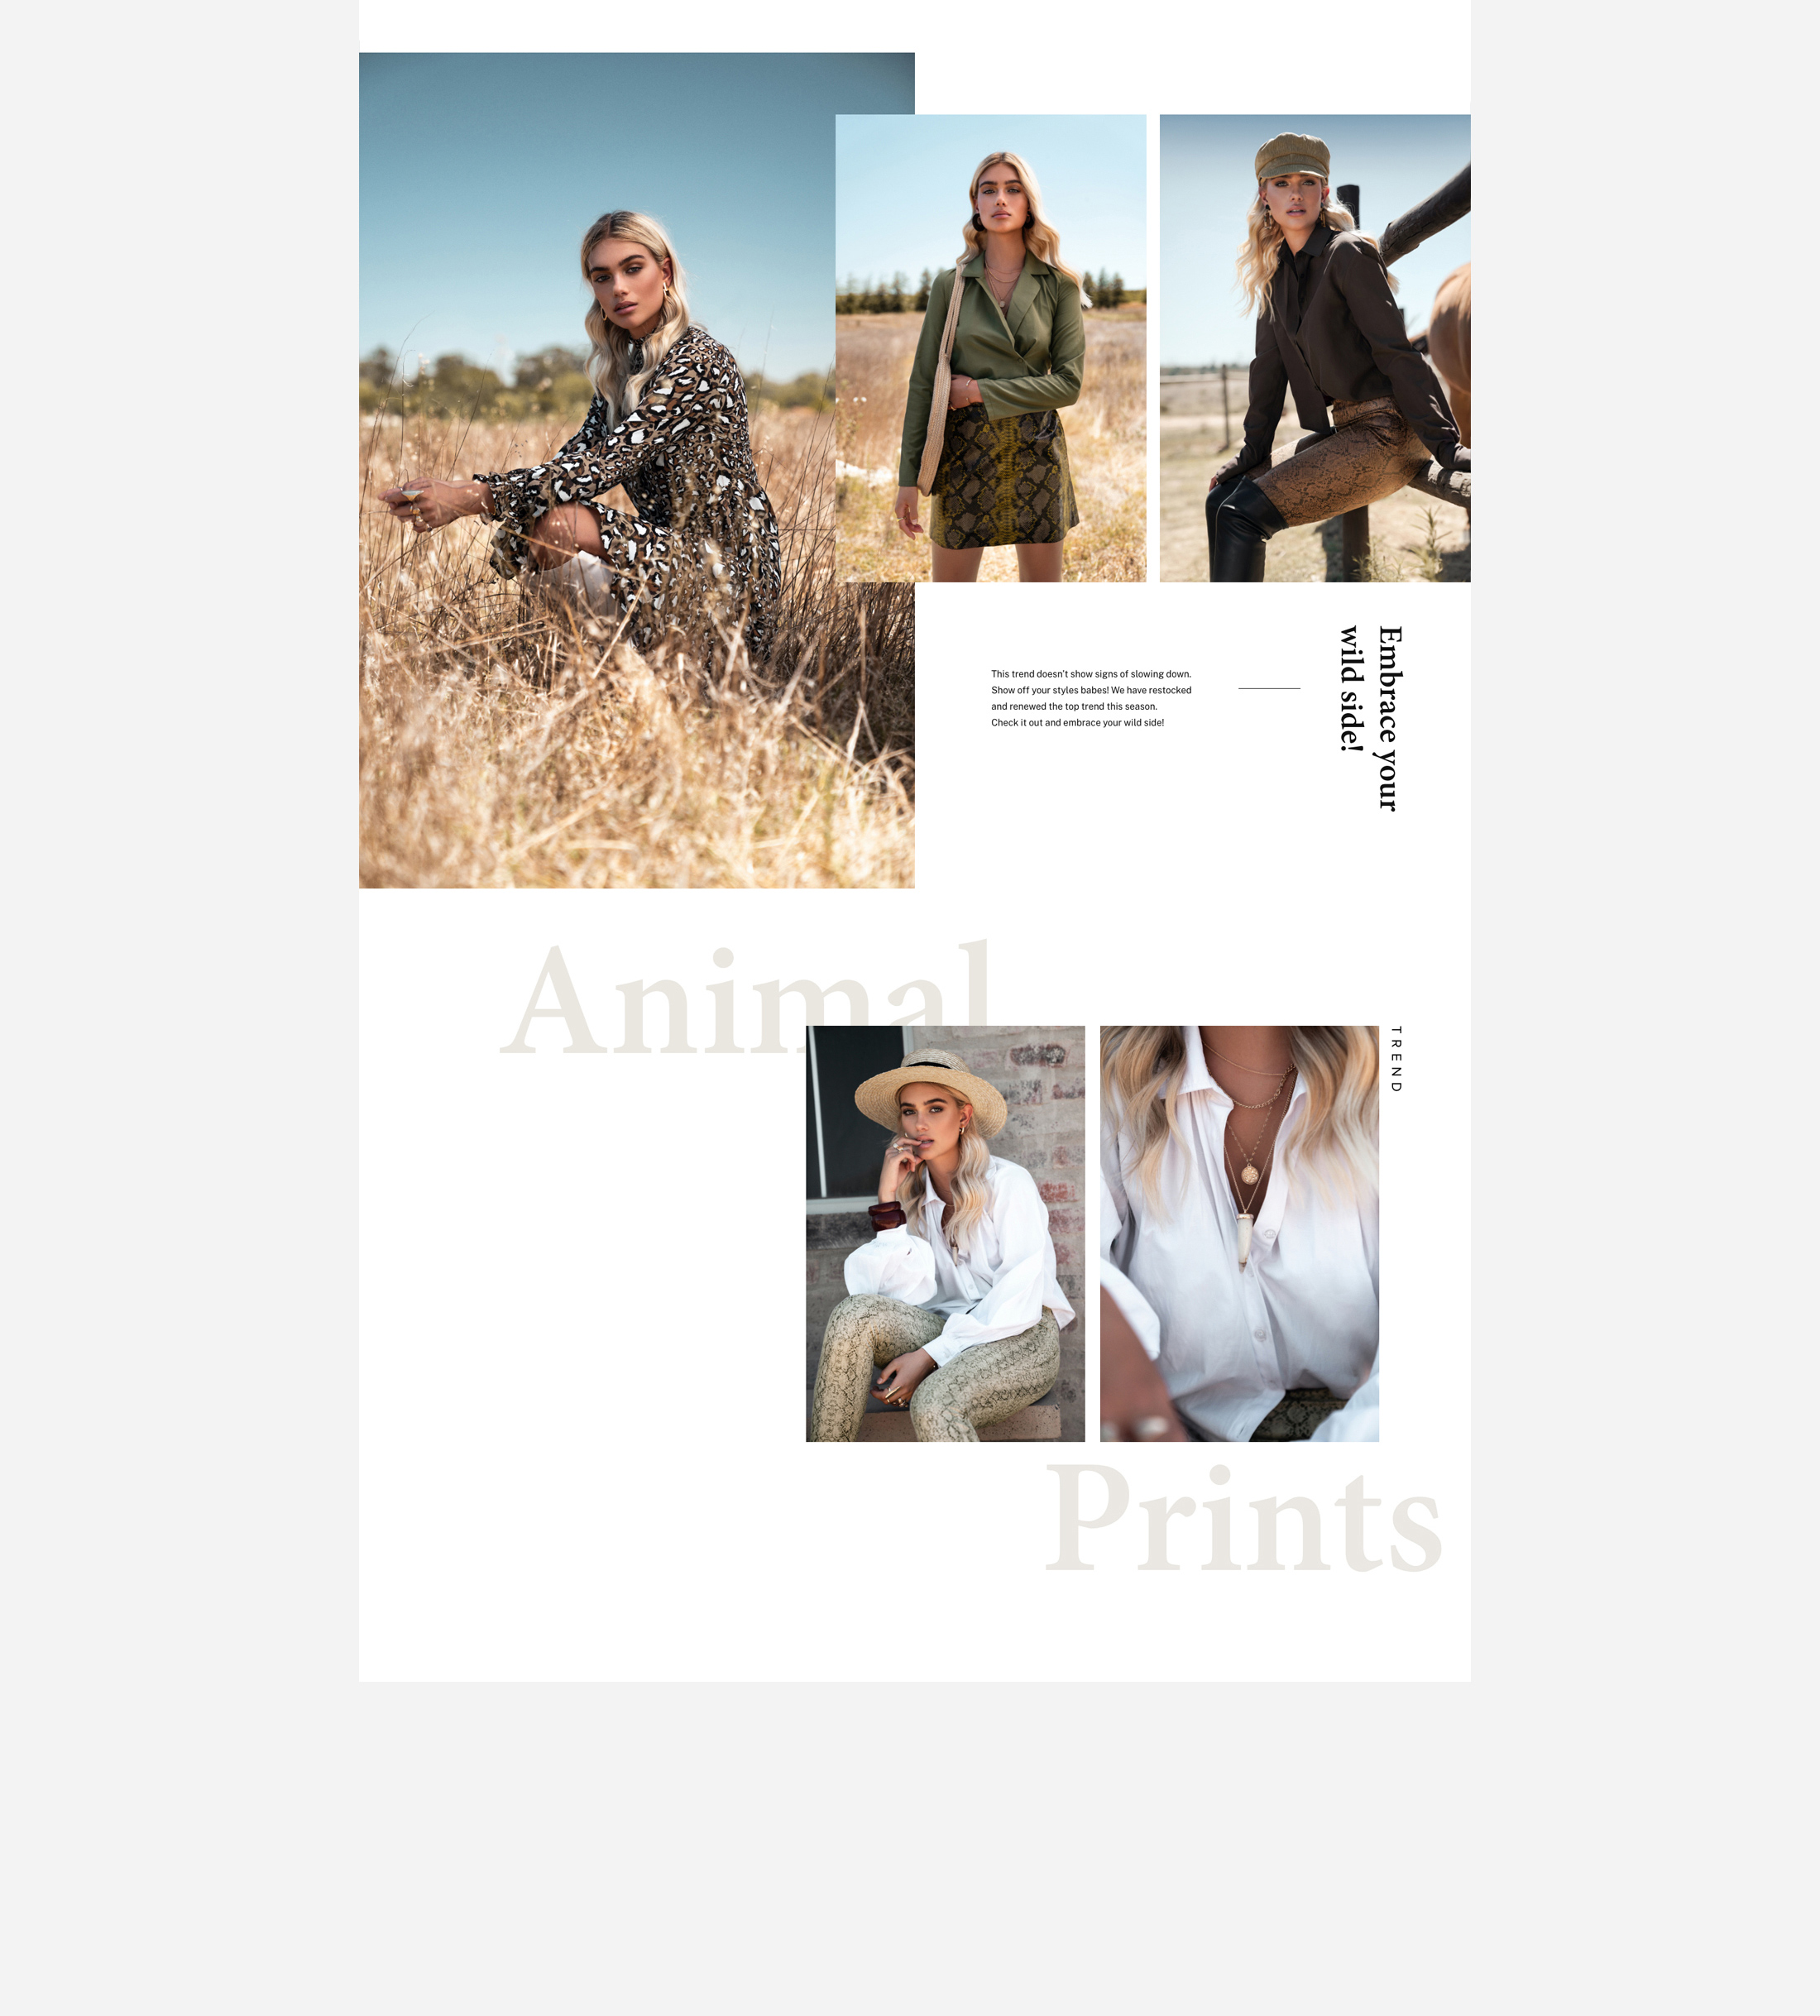 UI Design Newsletter Fashion Campaign Animal Prints Part 2